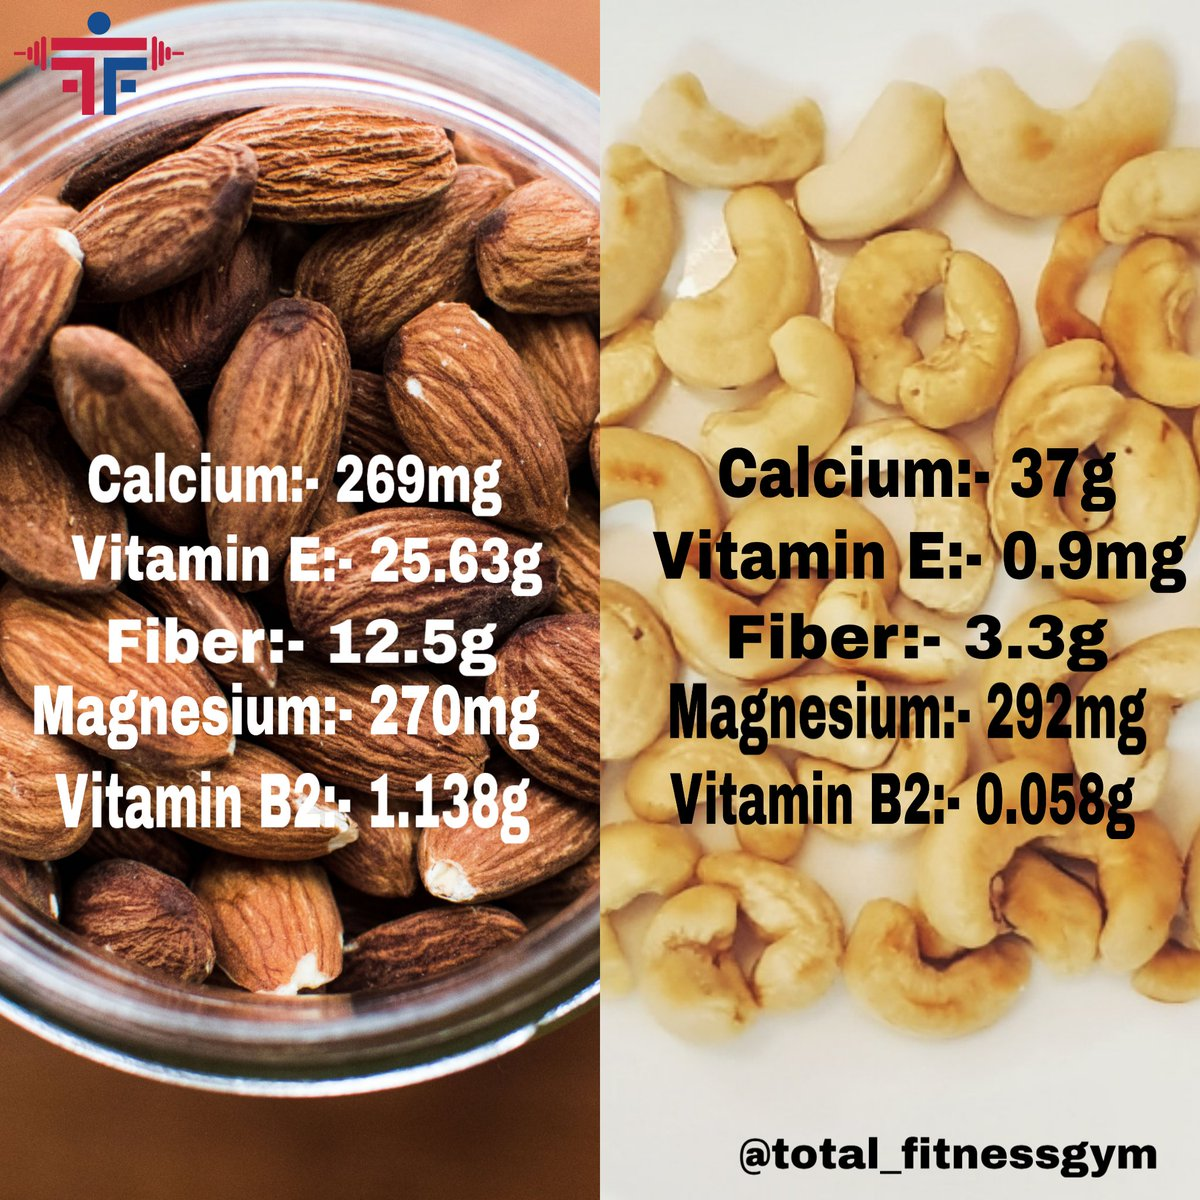 Cashews have less fiber and protein than almonds and peanuts, but are a good source of magnesium, which plays a significant role in heart health, bone health, and energy levels. #powerlifting #nutrition #fitness #health #healthylifestyle #healthy #healthyfood #motivation #gym https://t.co/RobXKYURCb